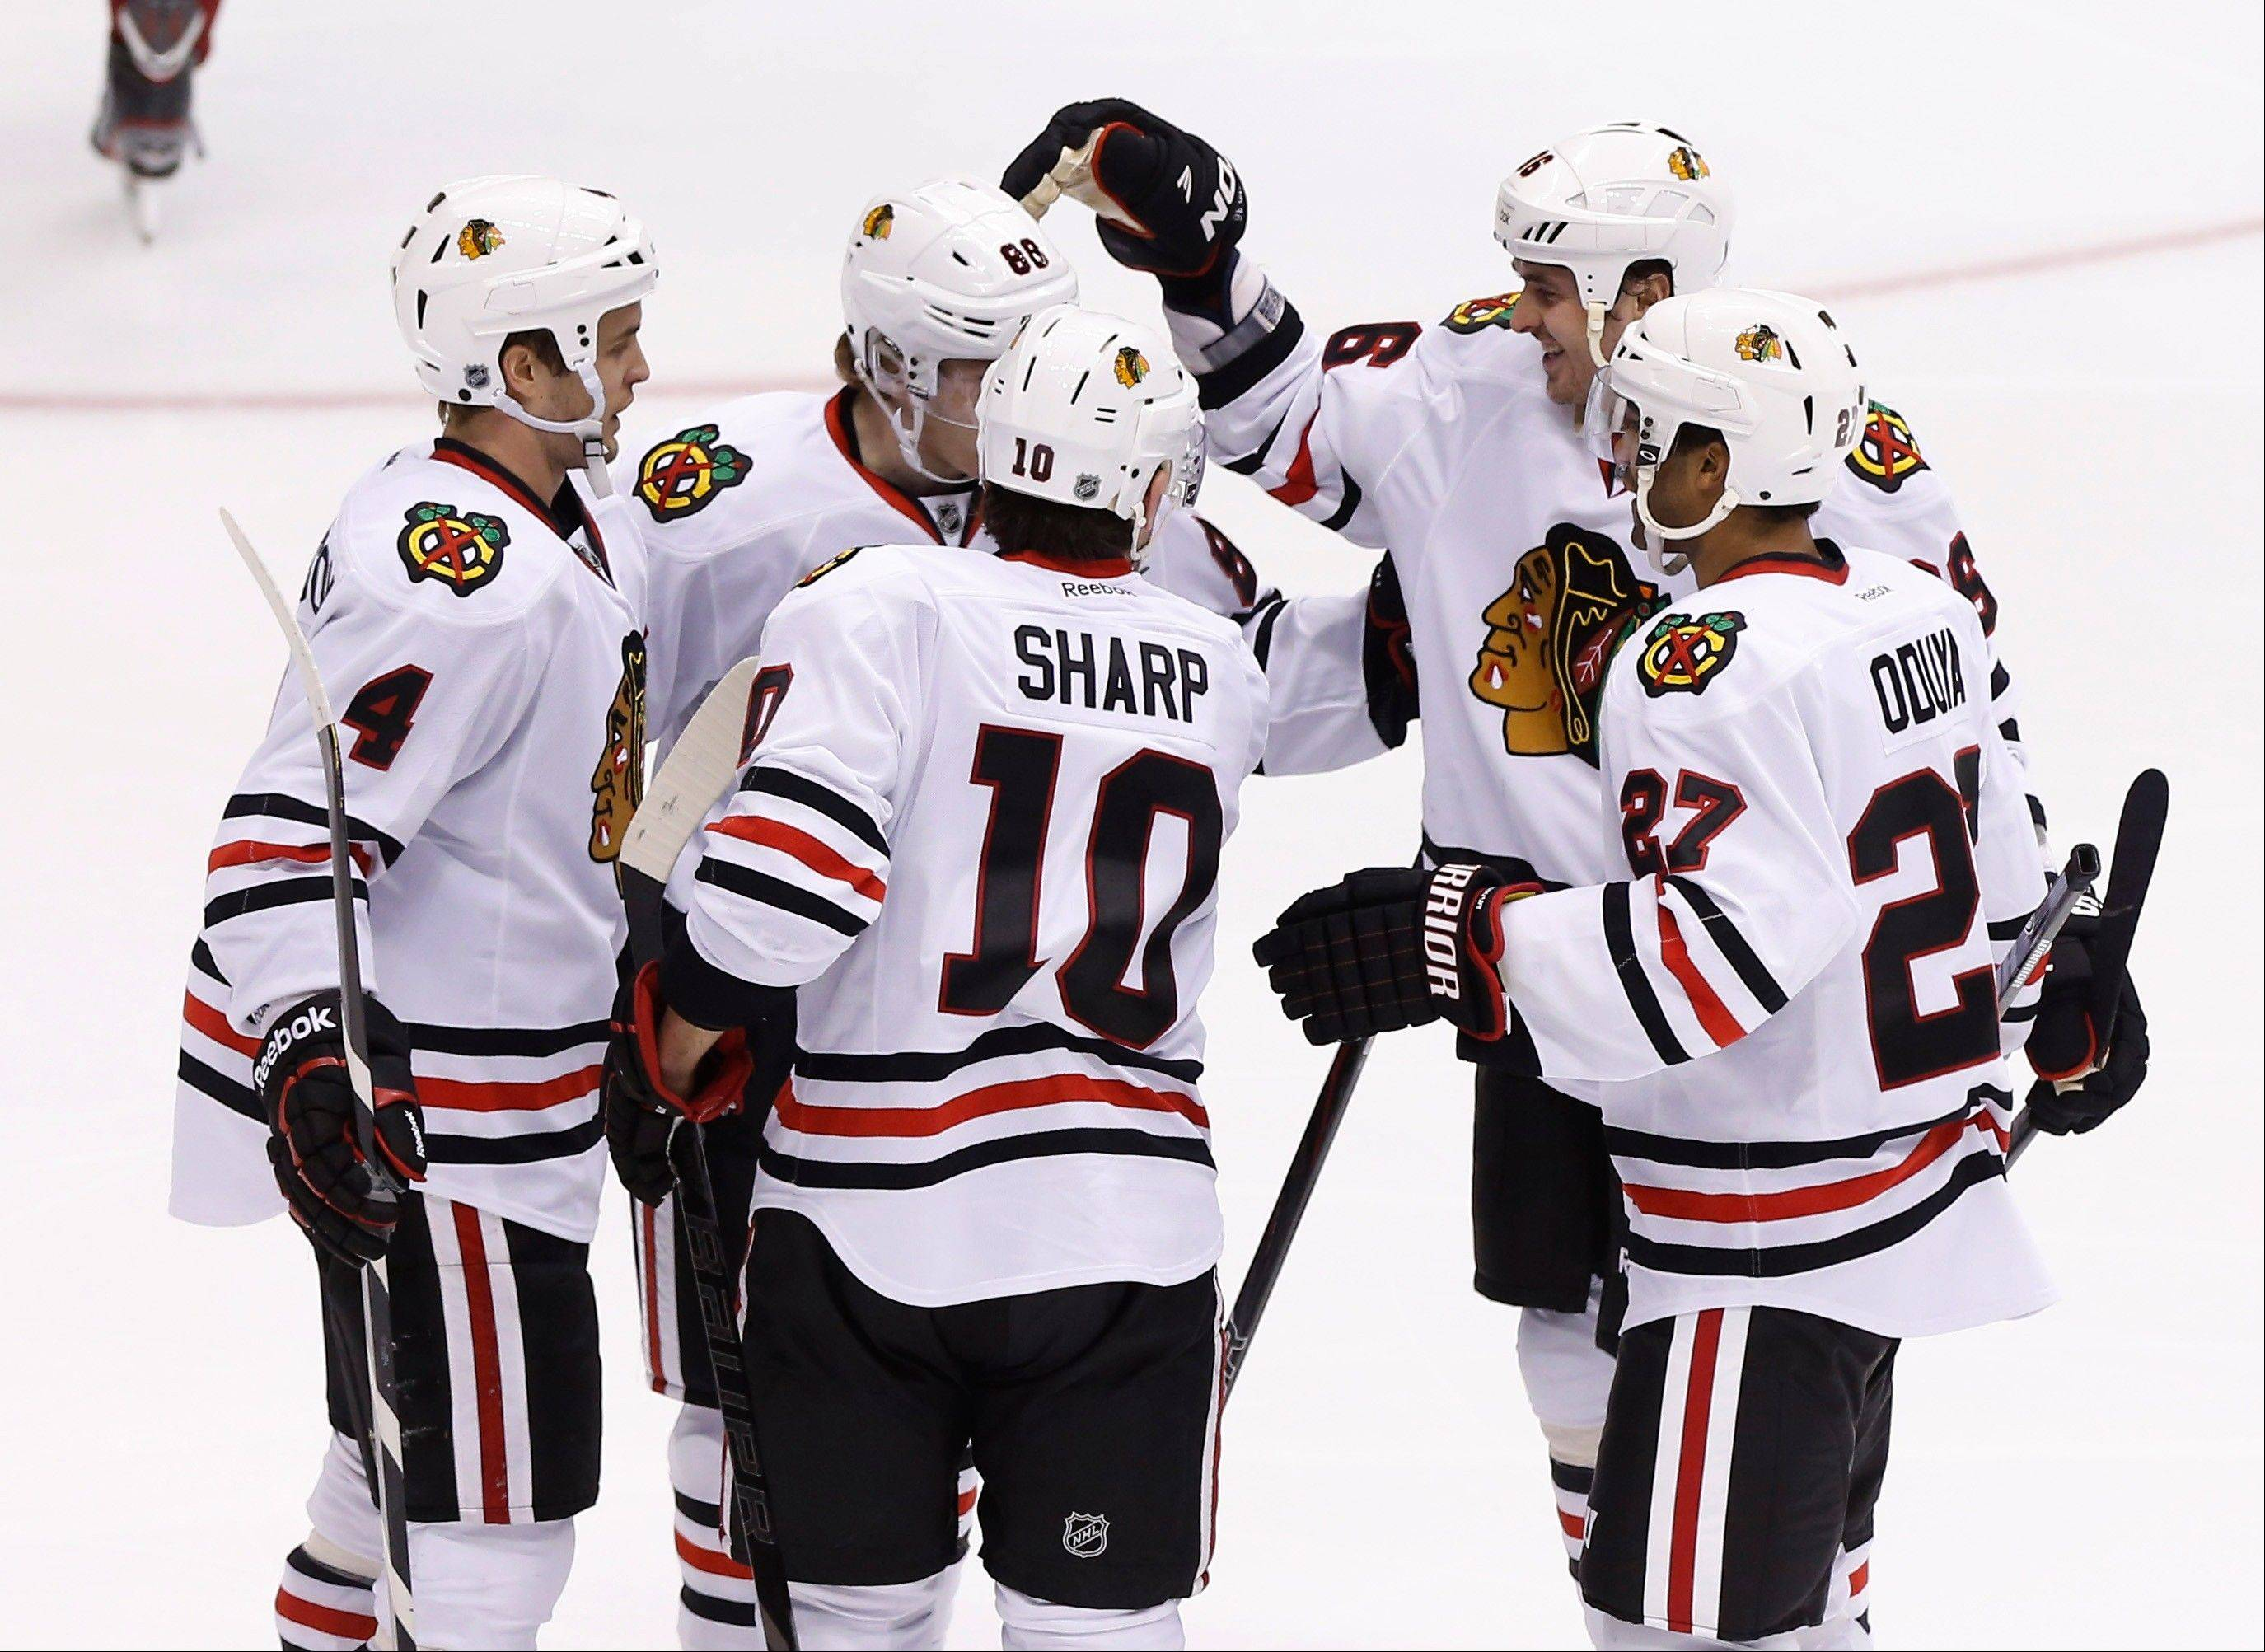 Blackhawks second line center Dave Bolland, right, celebrates his goal with teammates Johnny Oduya (27), Patrick Sharp (10), Niklas Hjalmarsson (4), and Patrick Kane (88) during Sunday's 6-4 win at Phoenix.